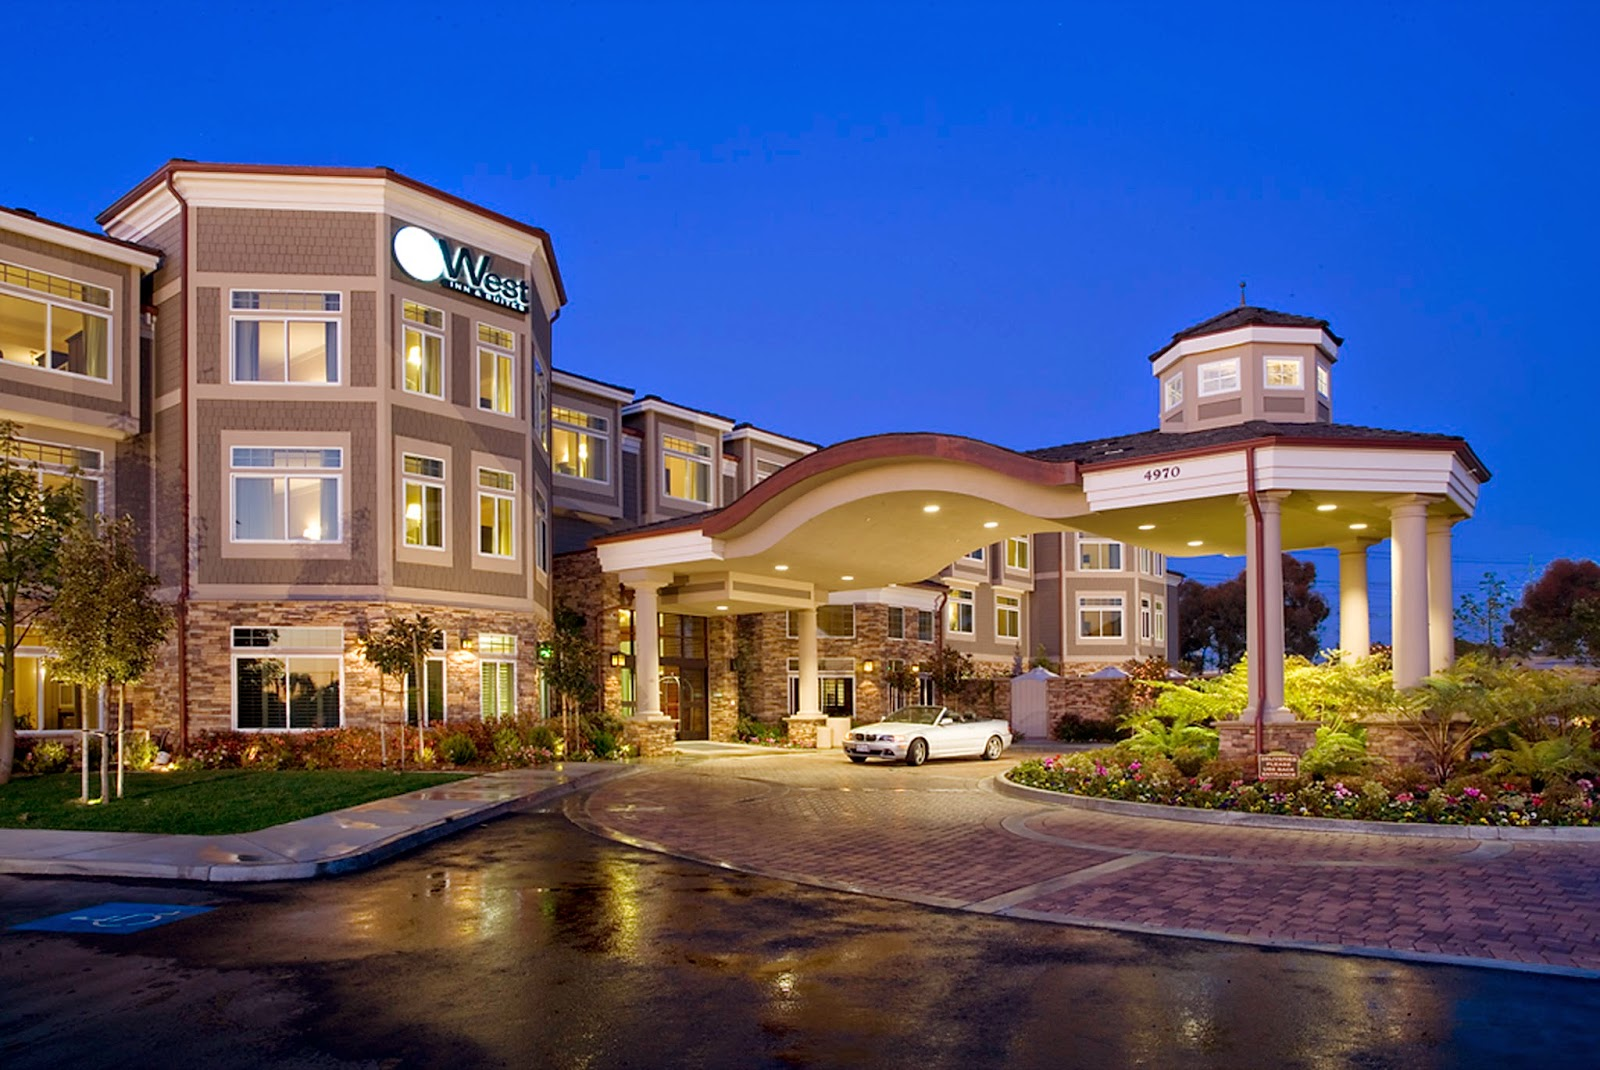 Carlsbad's West Inn & Suites in San Diego California